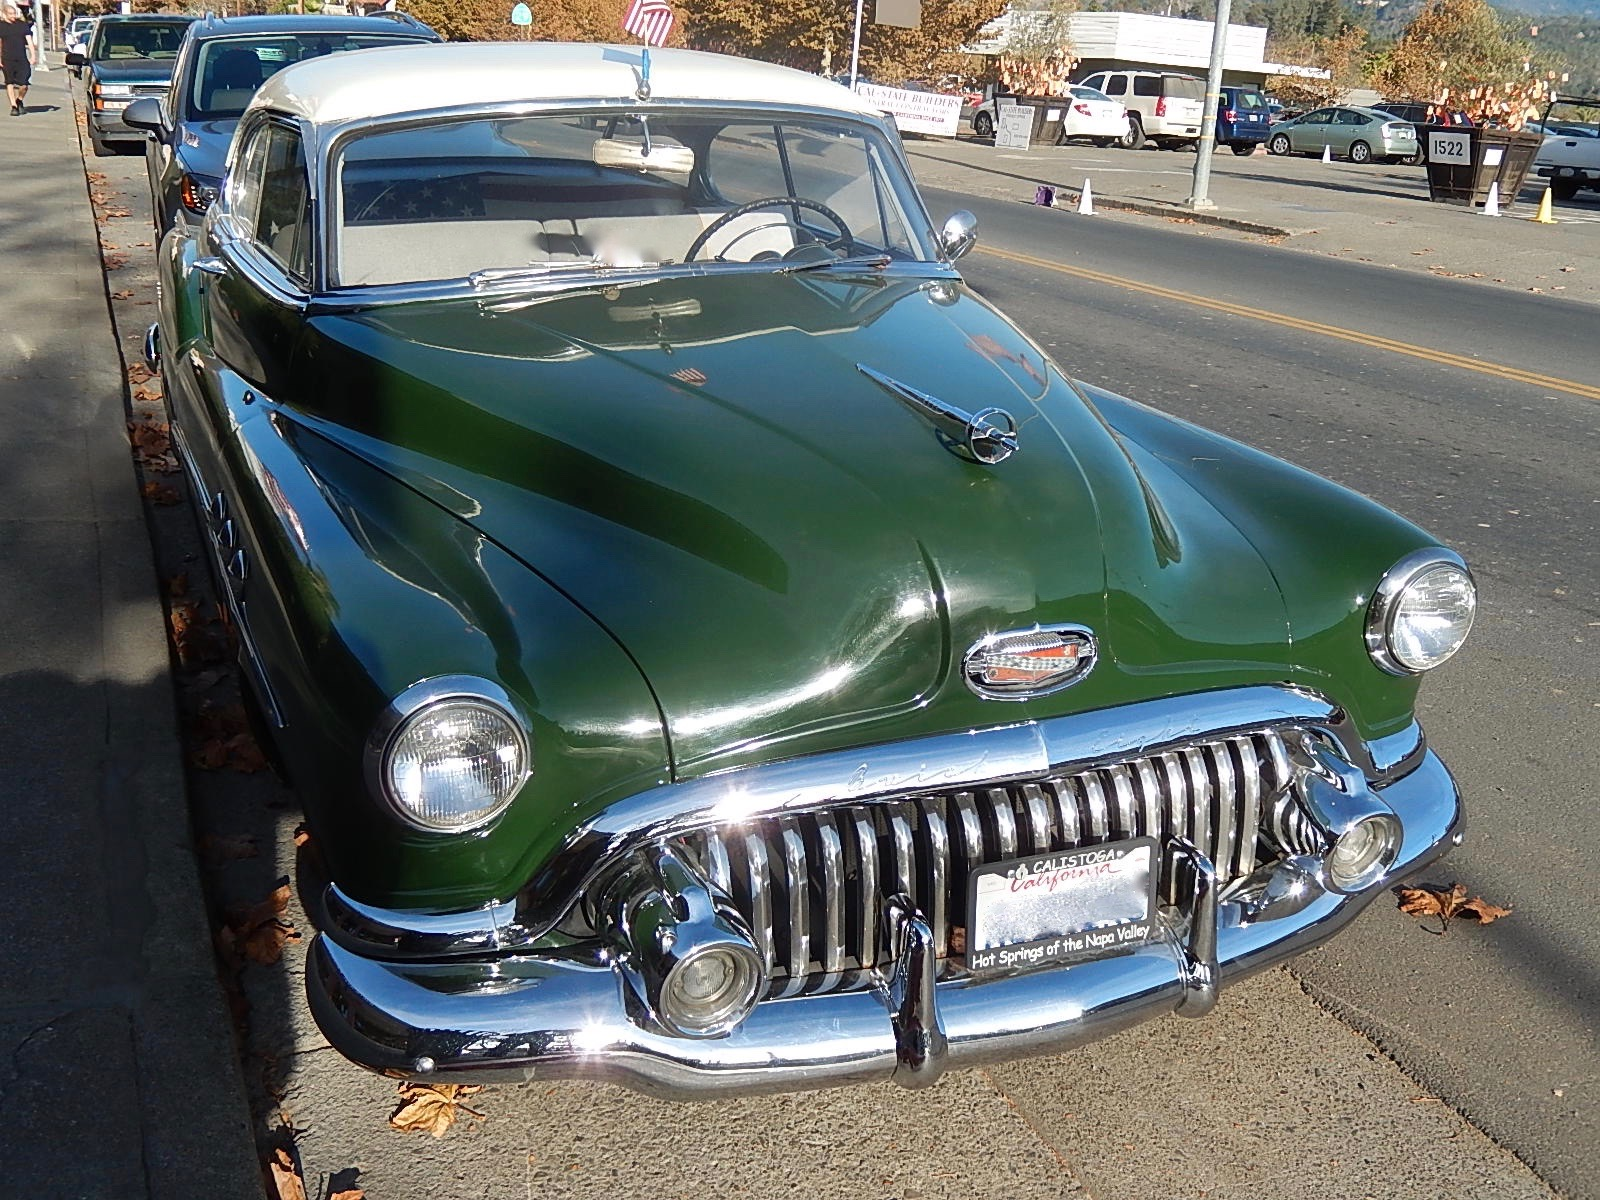 Car Style Critic: The Archetypical Buick: Model Year 1952